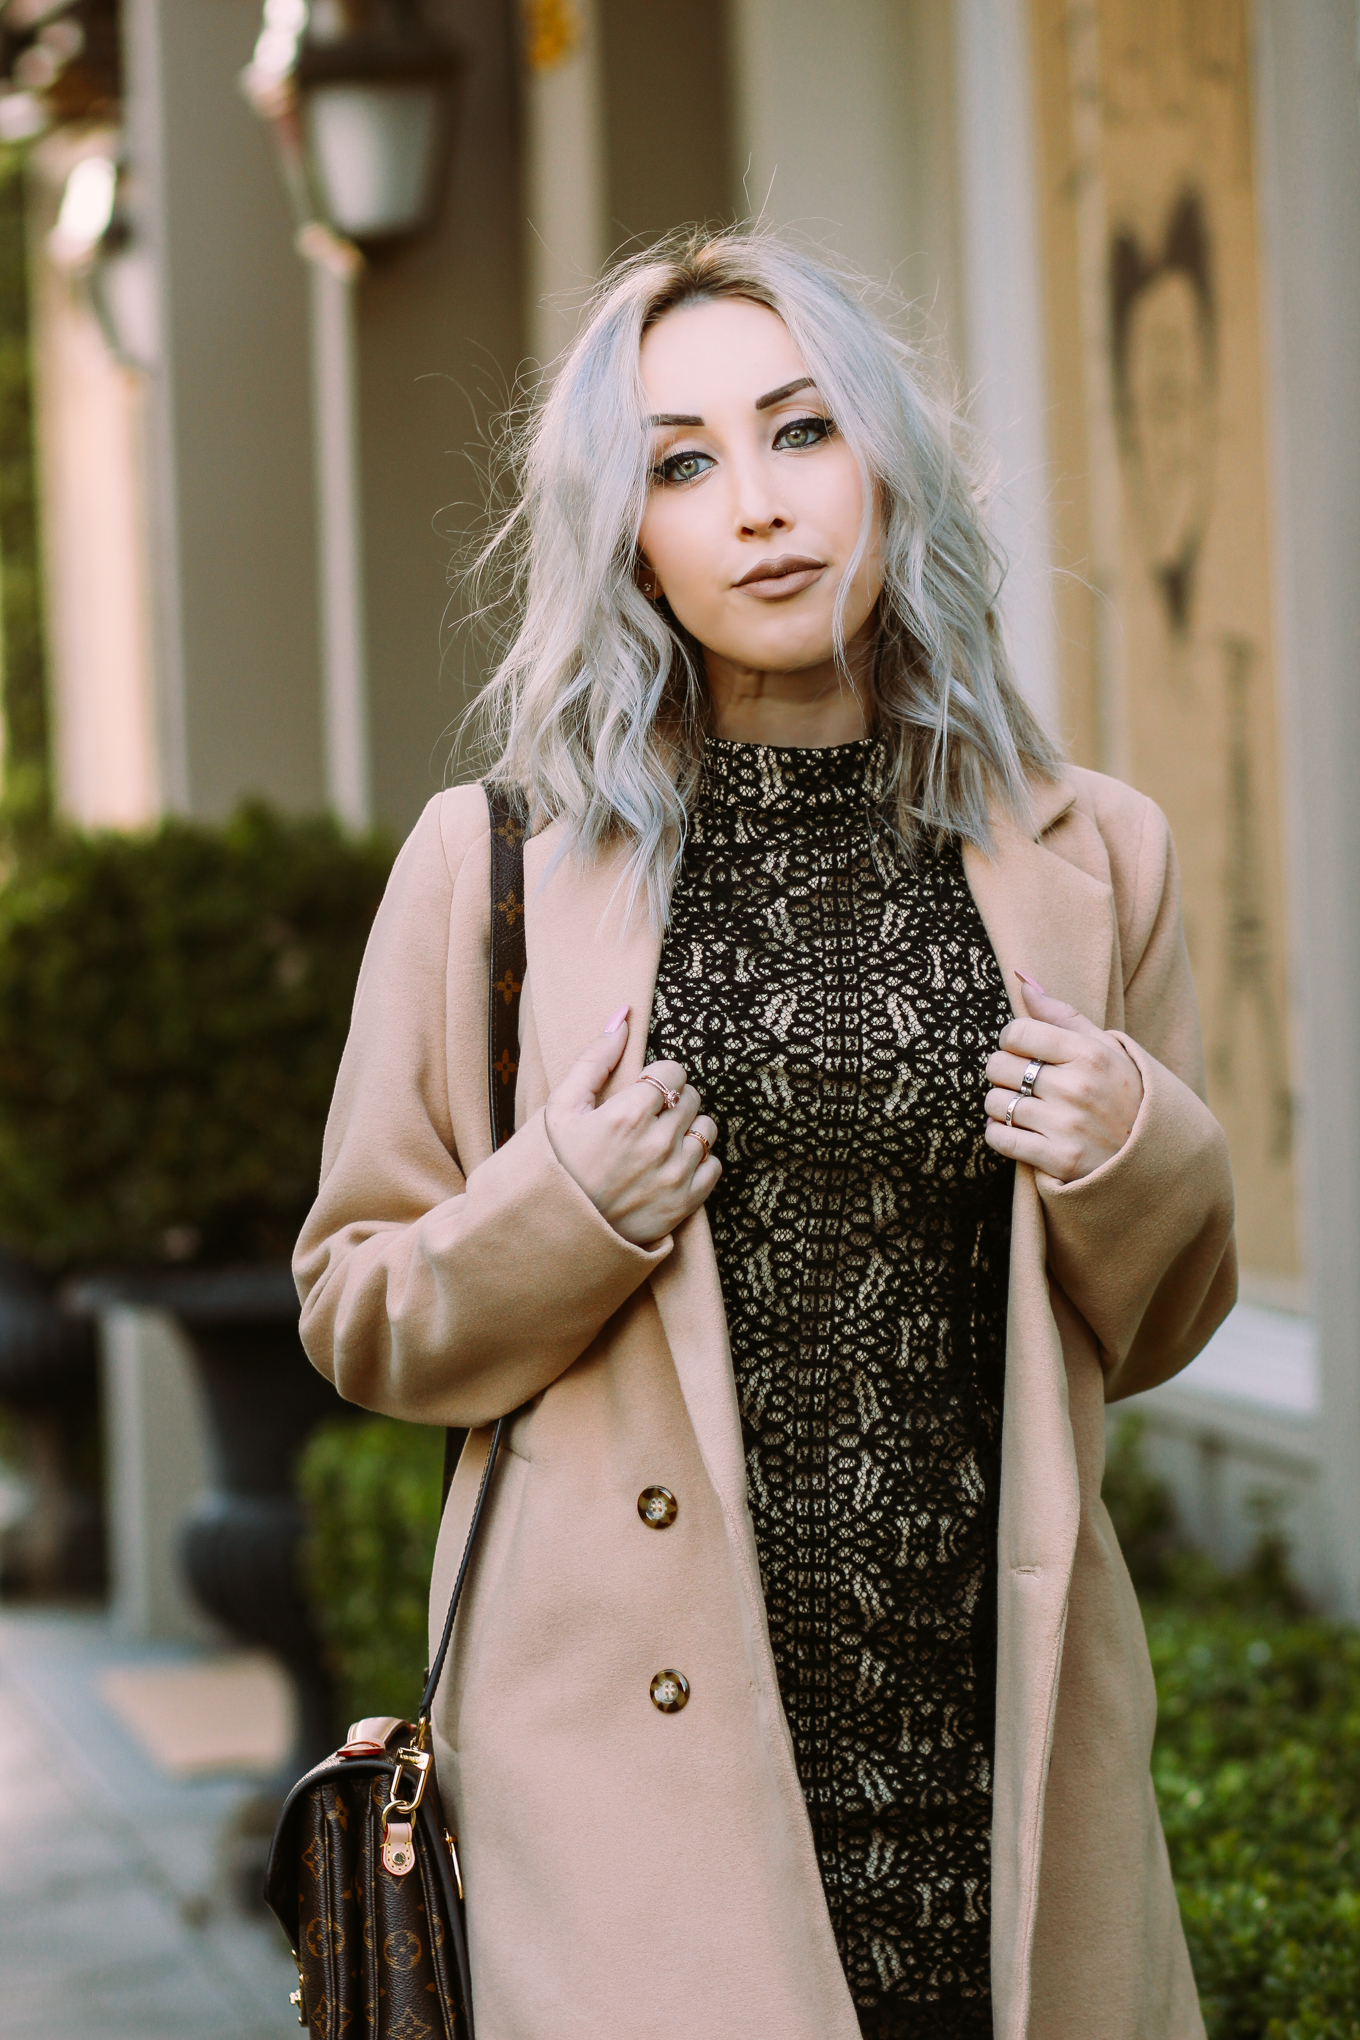 Blondie in the City | Halter Lace Dress, Camel coat, Louis Vuitton Bag | Chic #OOTD